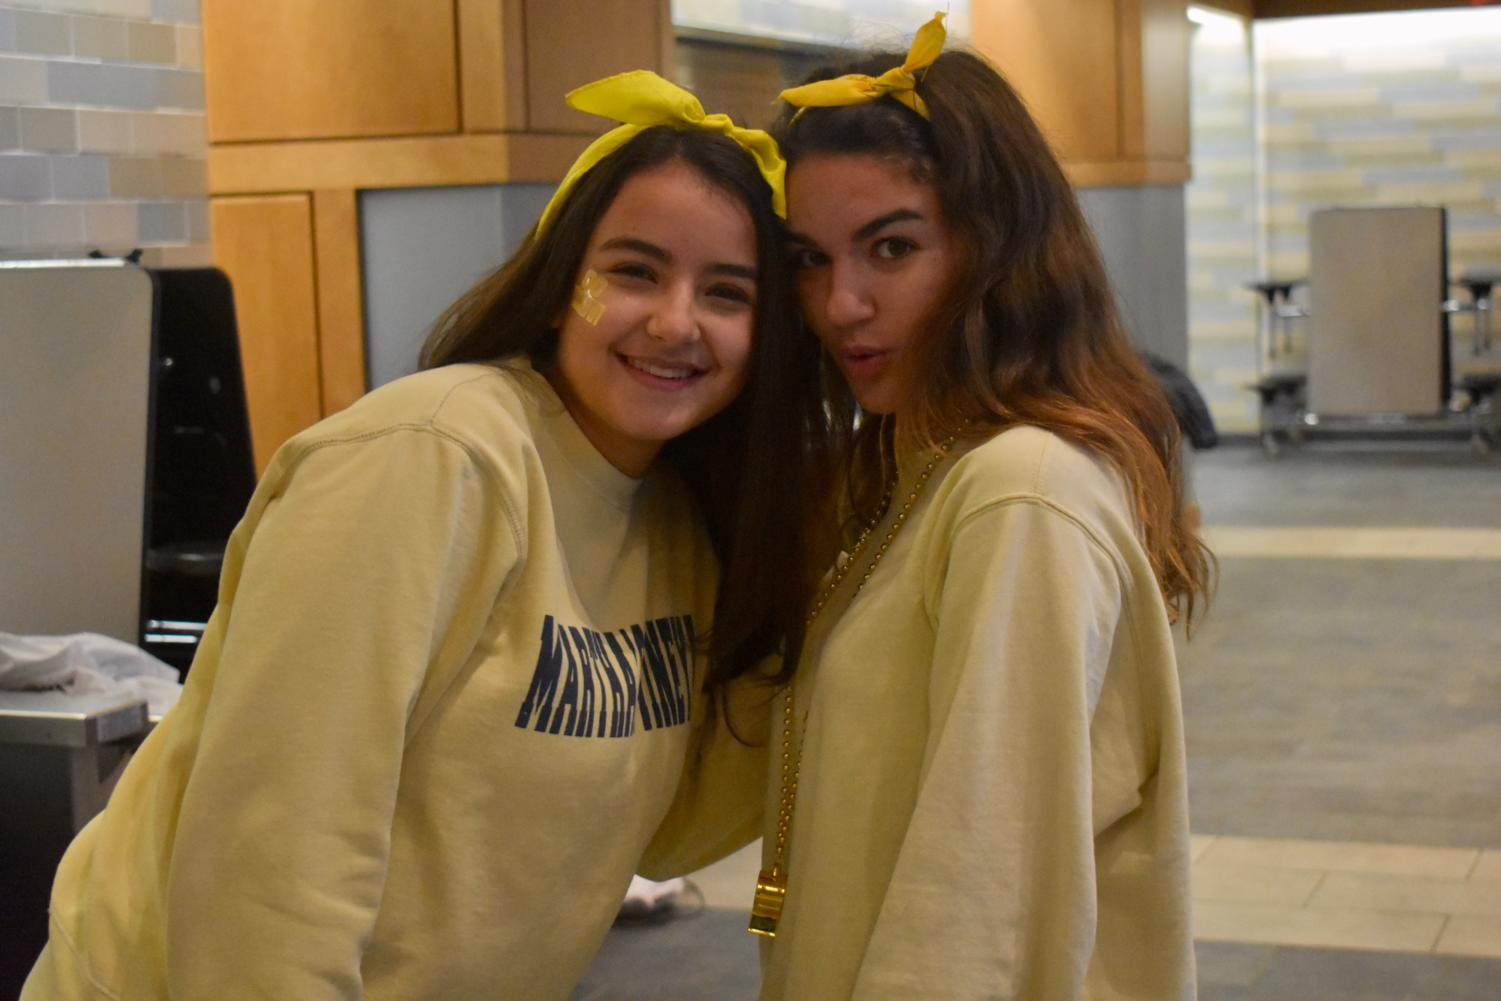 Juniors+Fatma+Sayeh+and+Christina+Taxiarchis+dress+in+yellow+to+show+team+spirit.